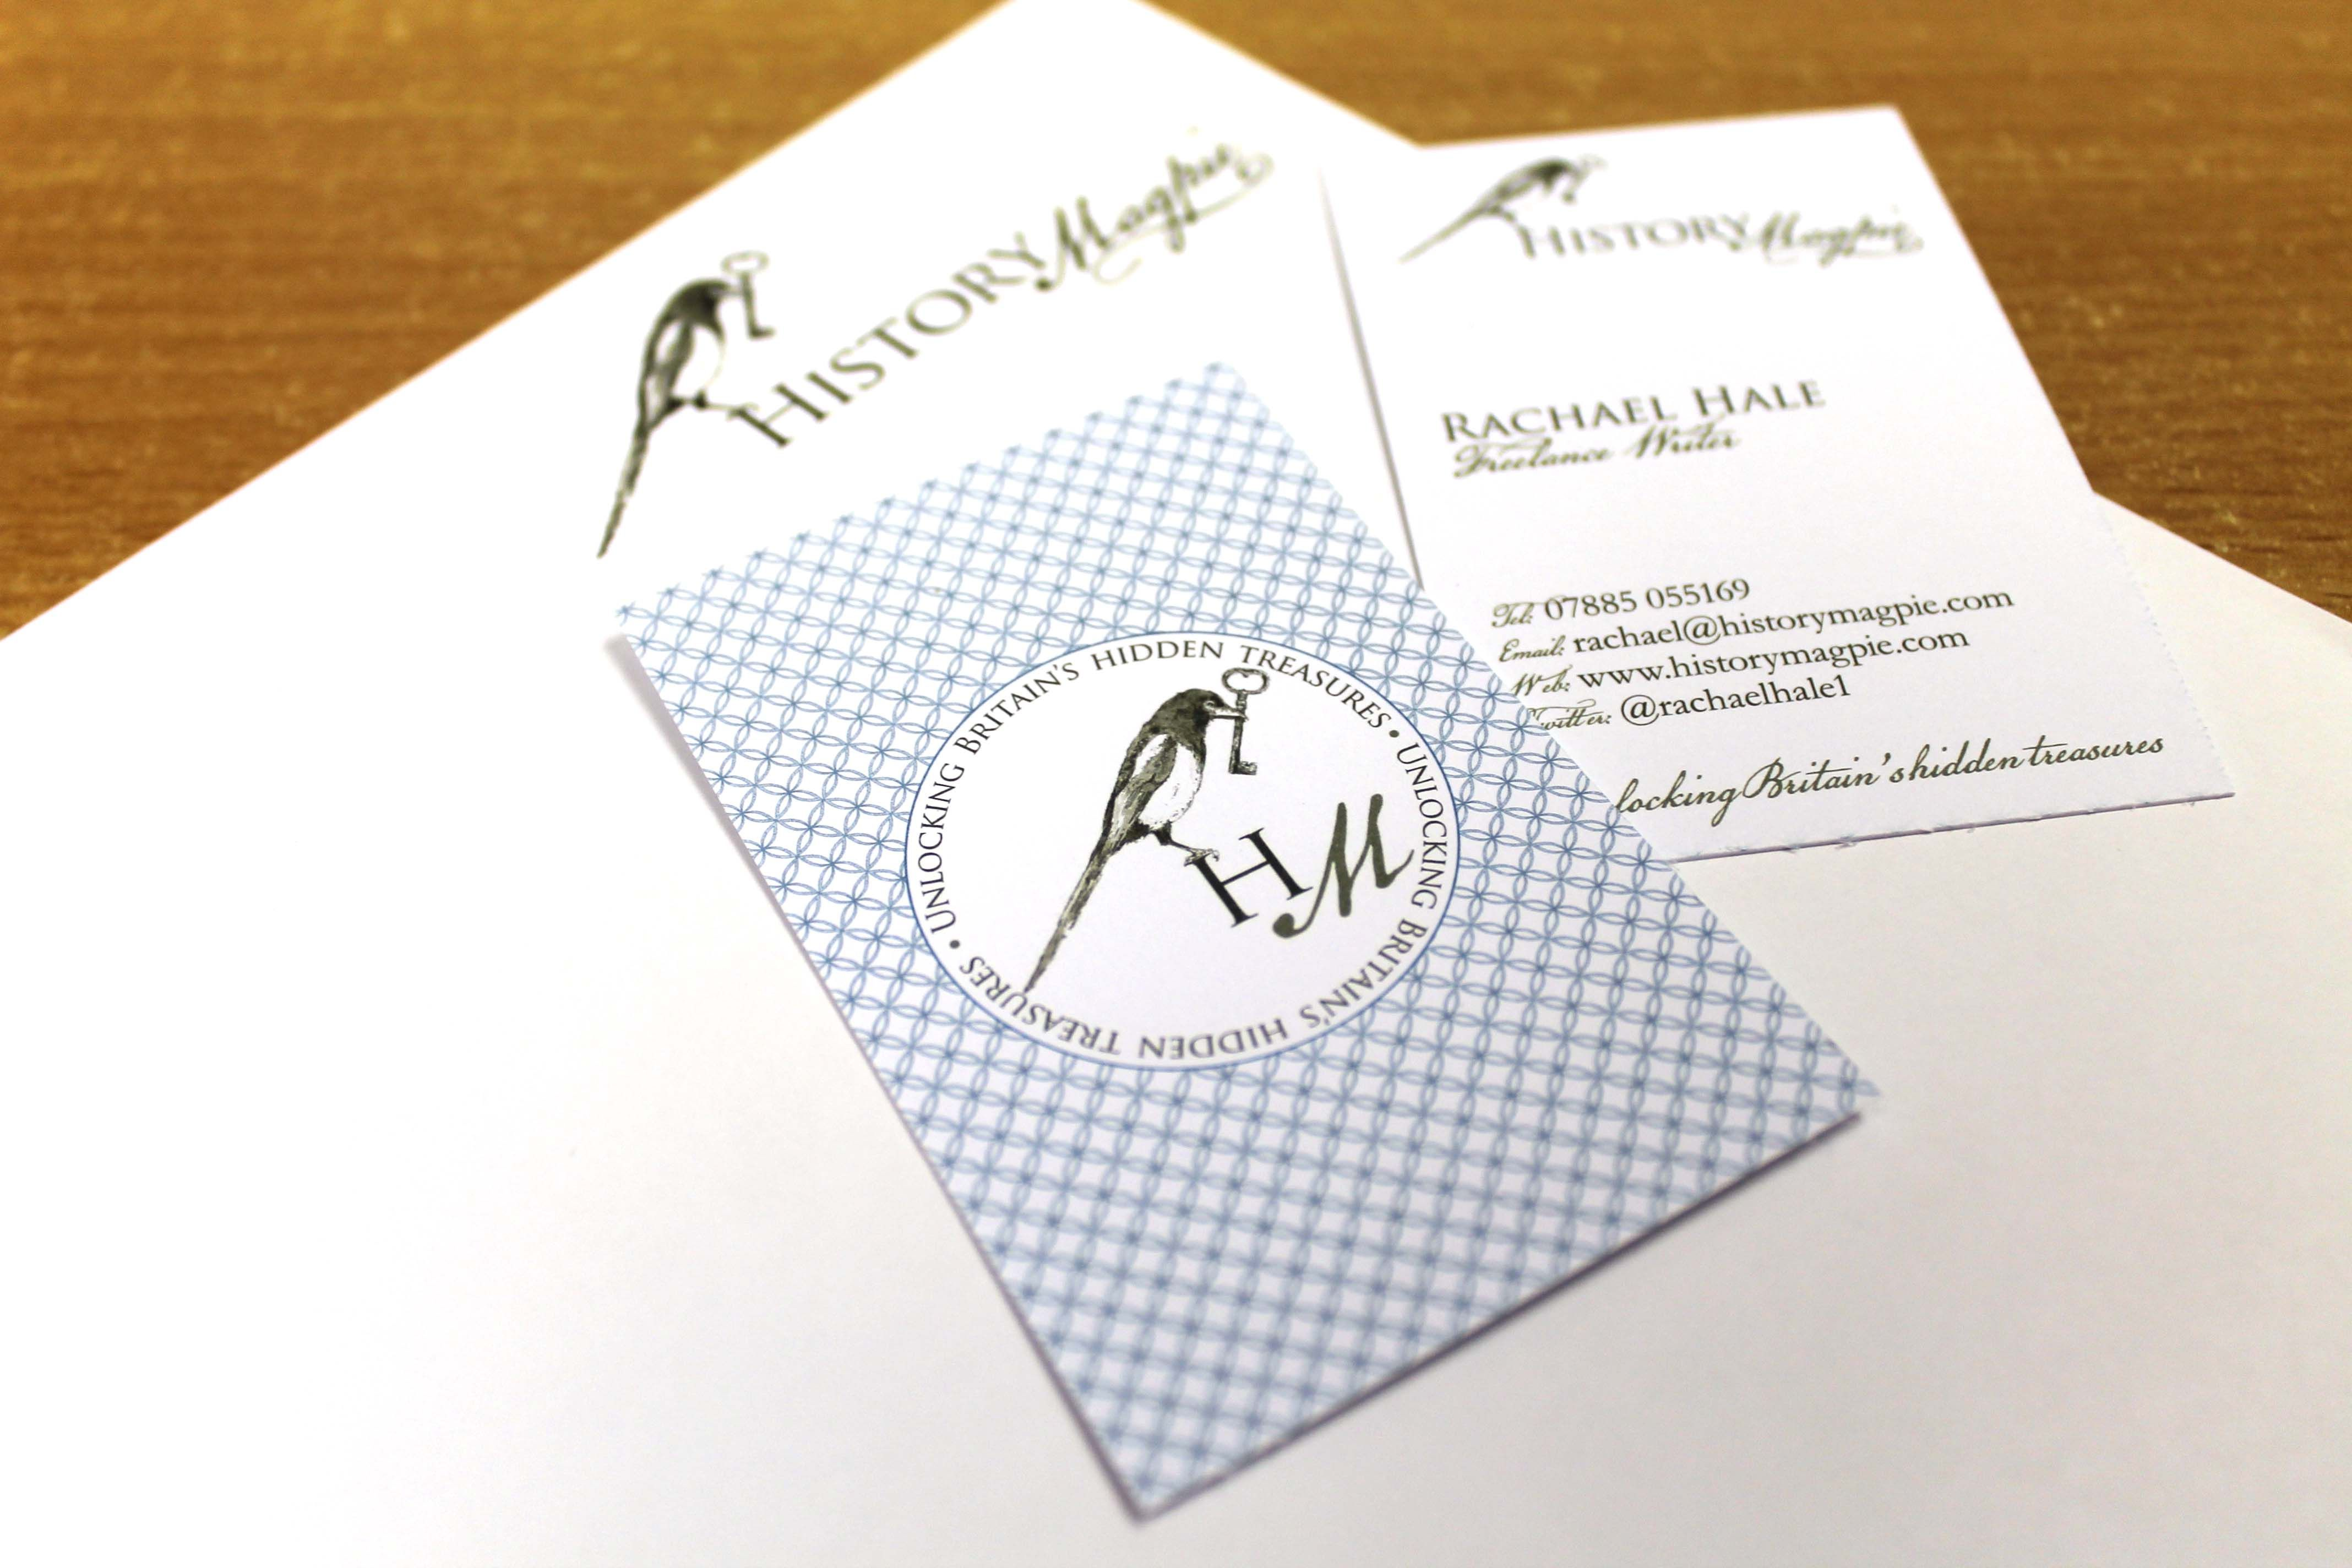 the history magpie logo design and business card design by ditto